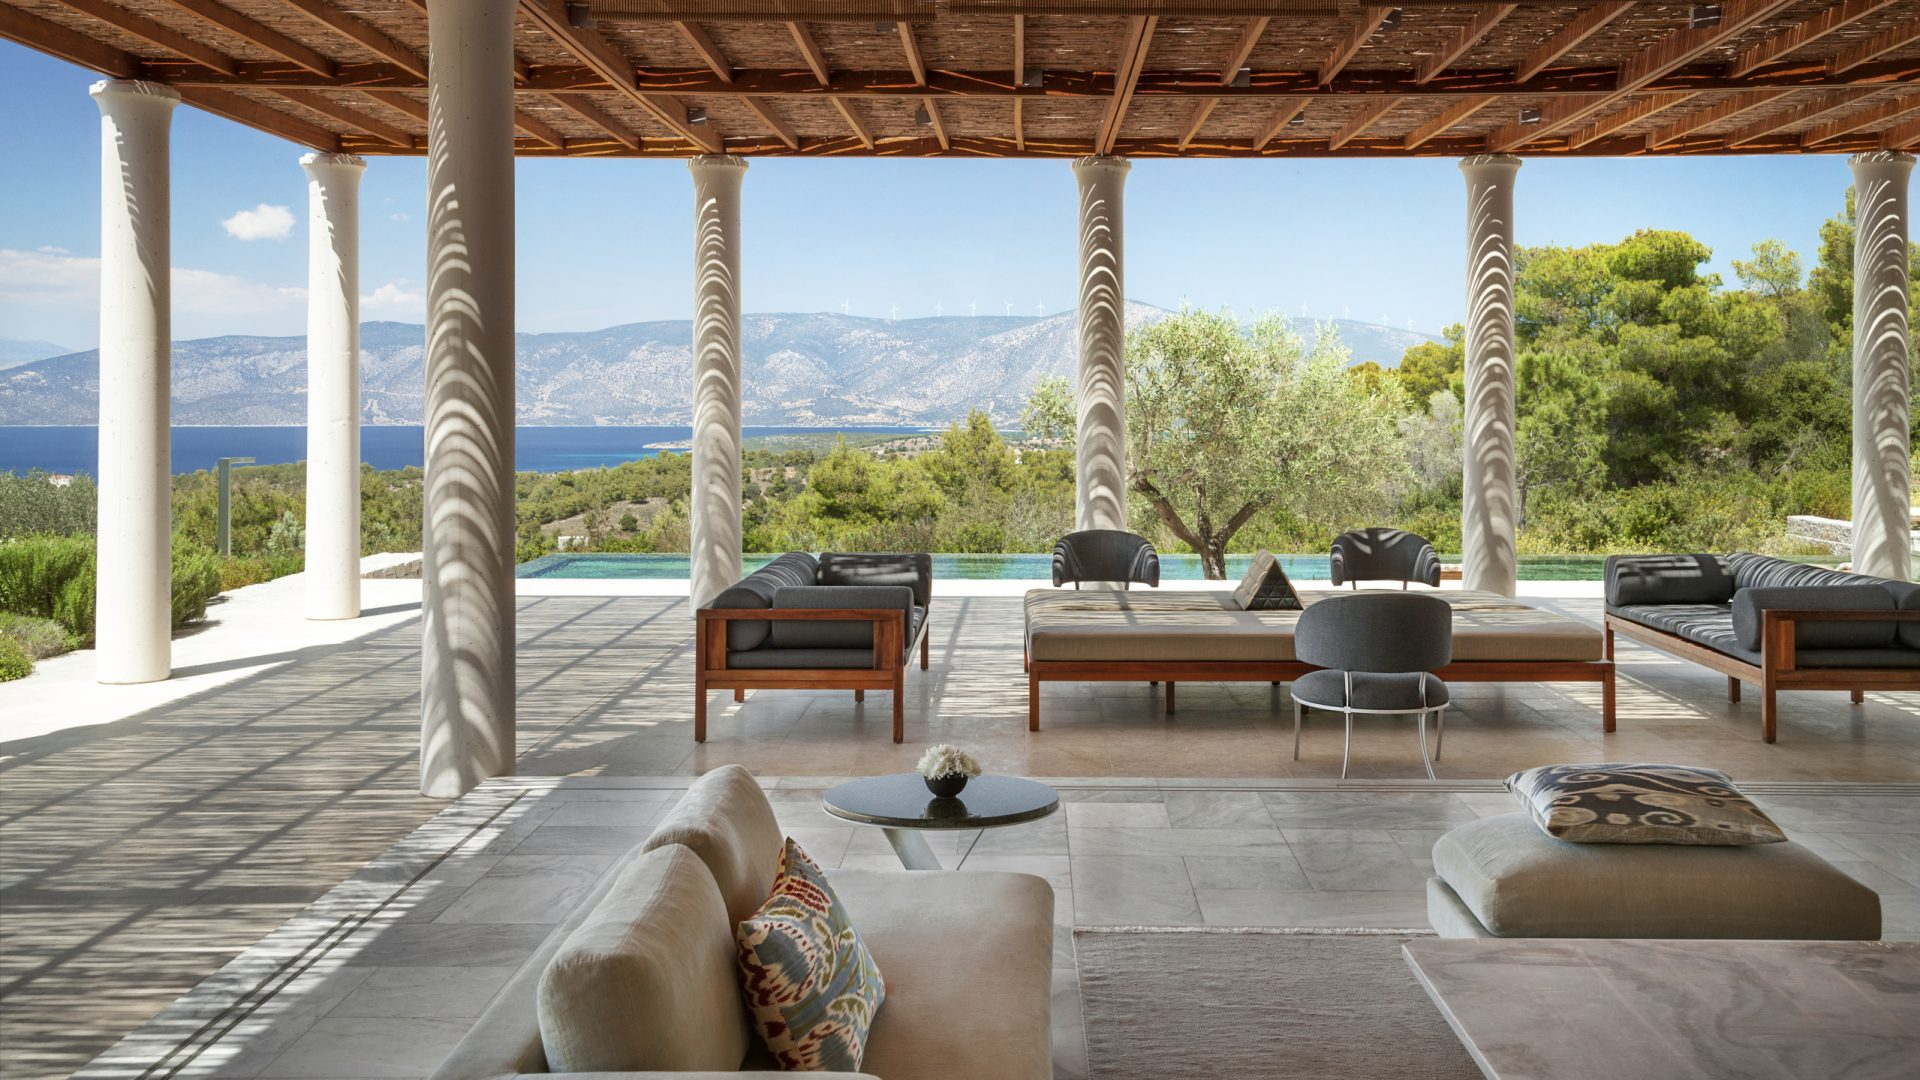 Amanzoe, Greece - Living Room and Lounge, 5 Bedroom Villa